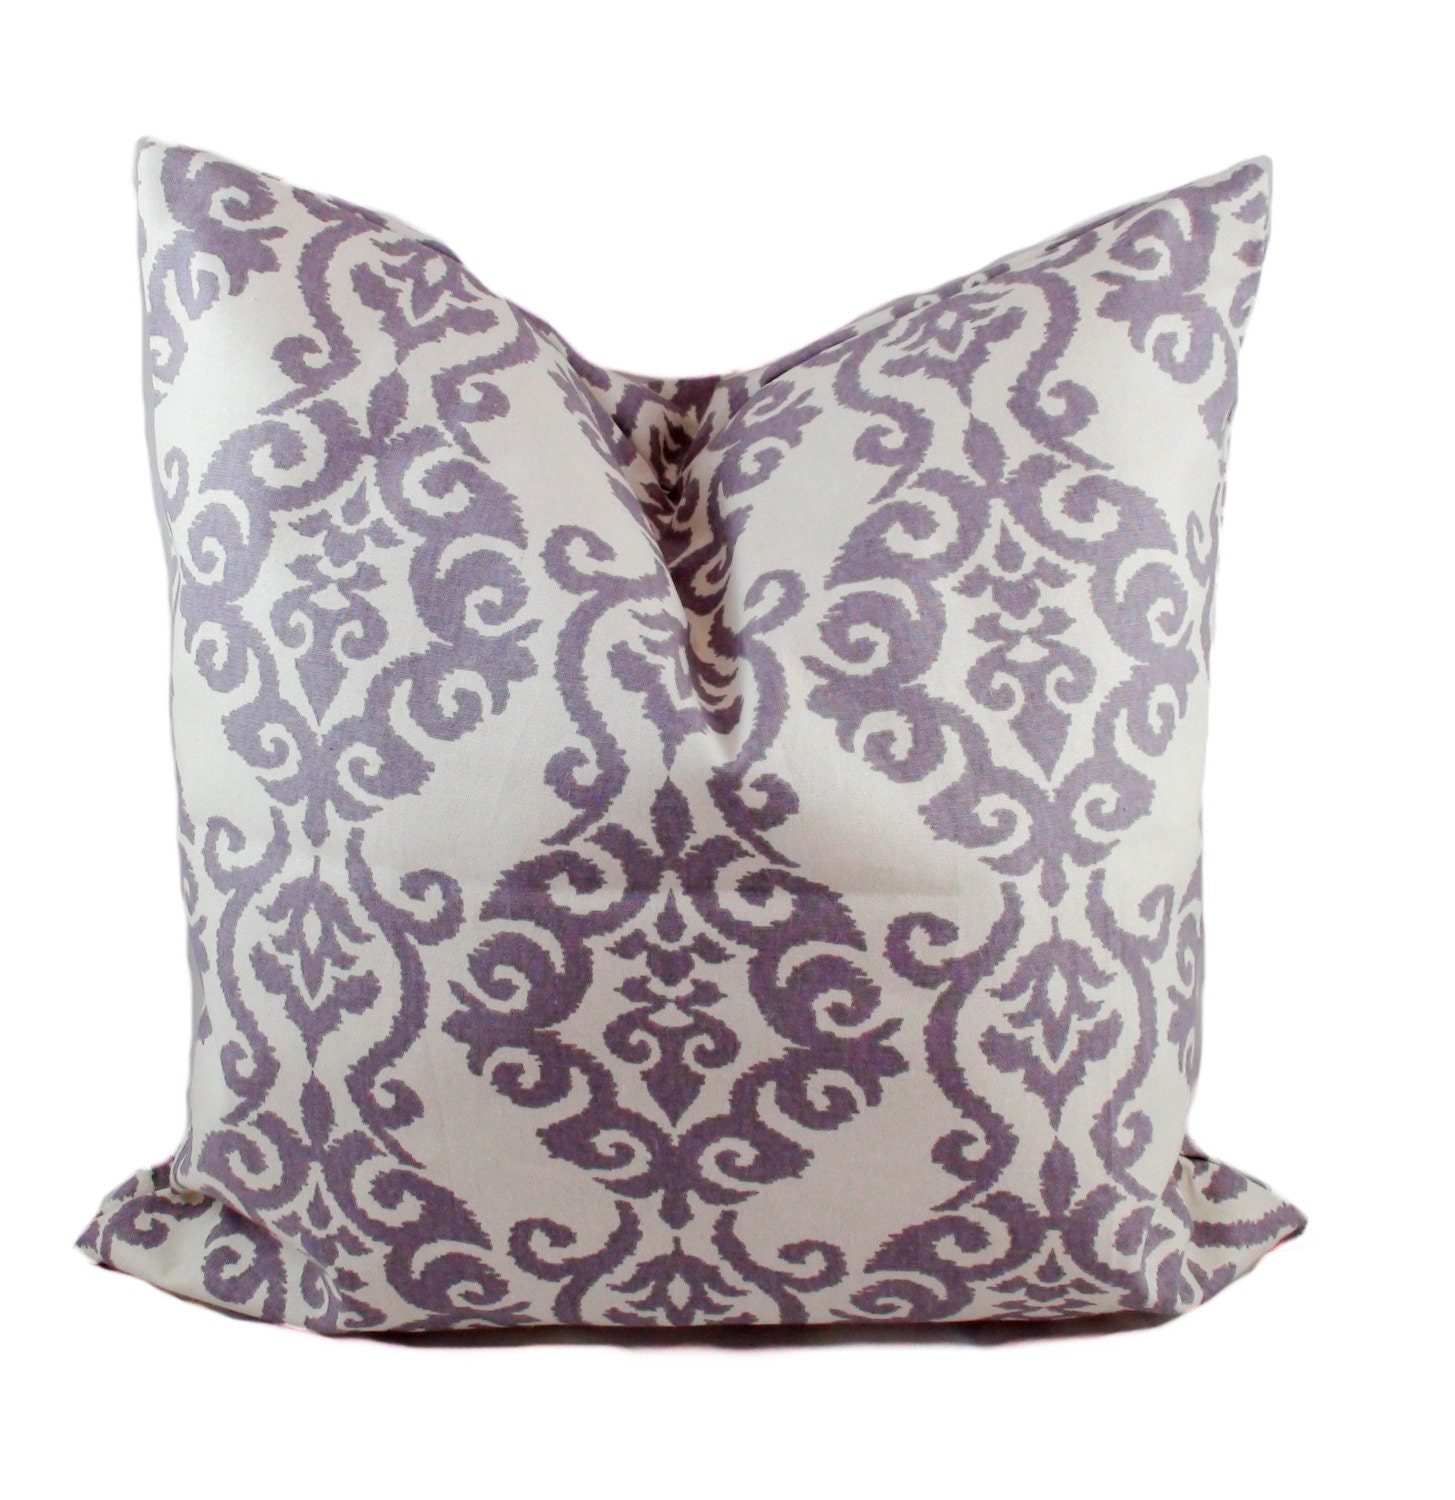 home bedding accent dillards pillow decorative zi purple pillows animal throw c